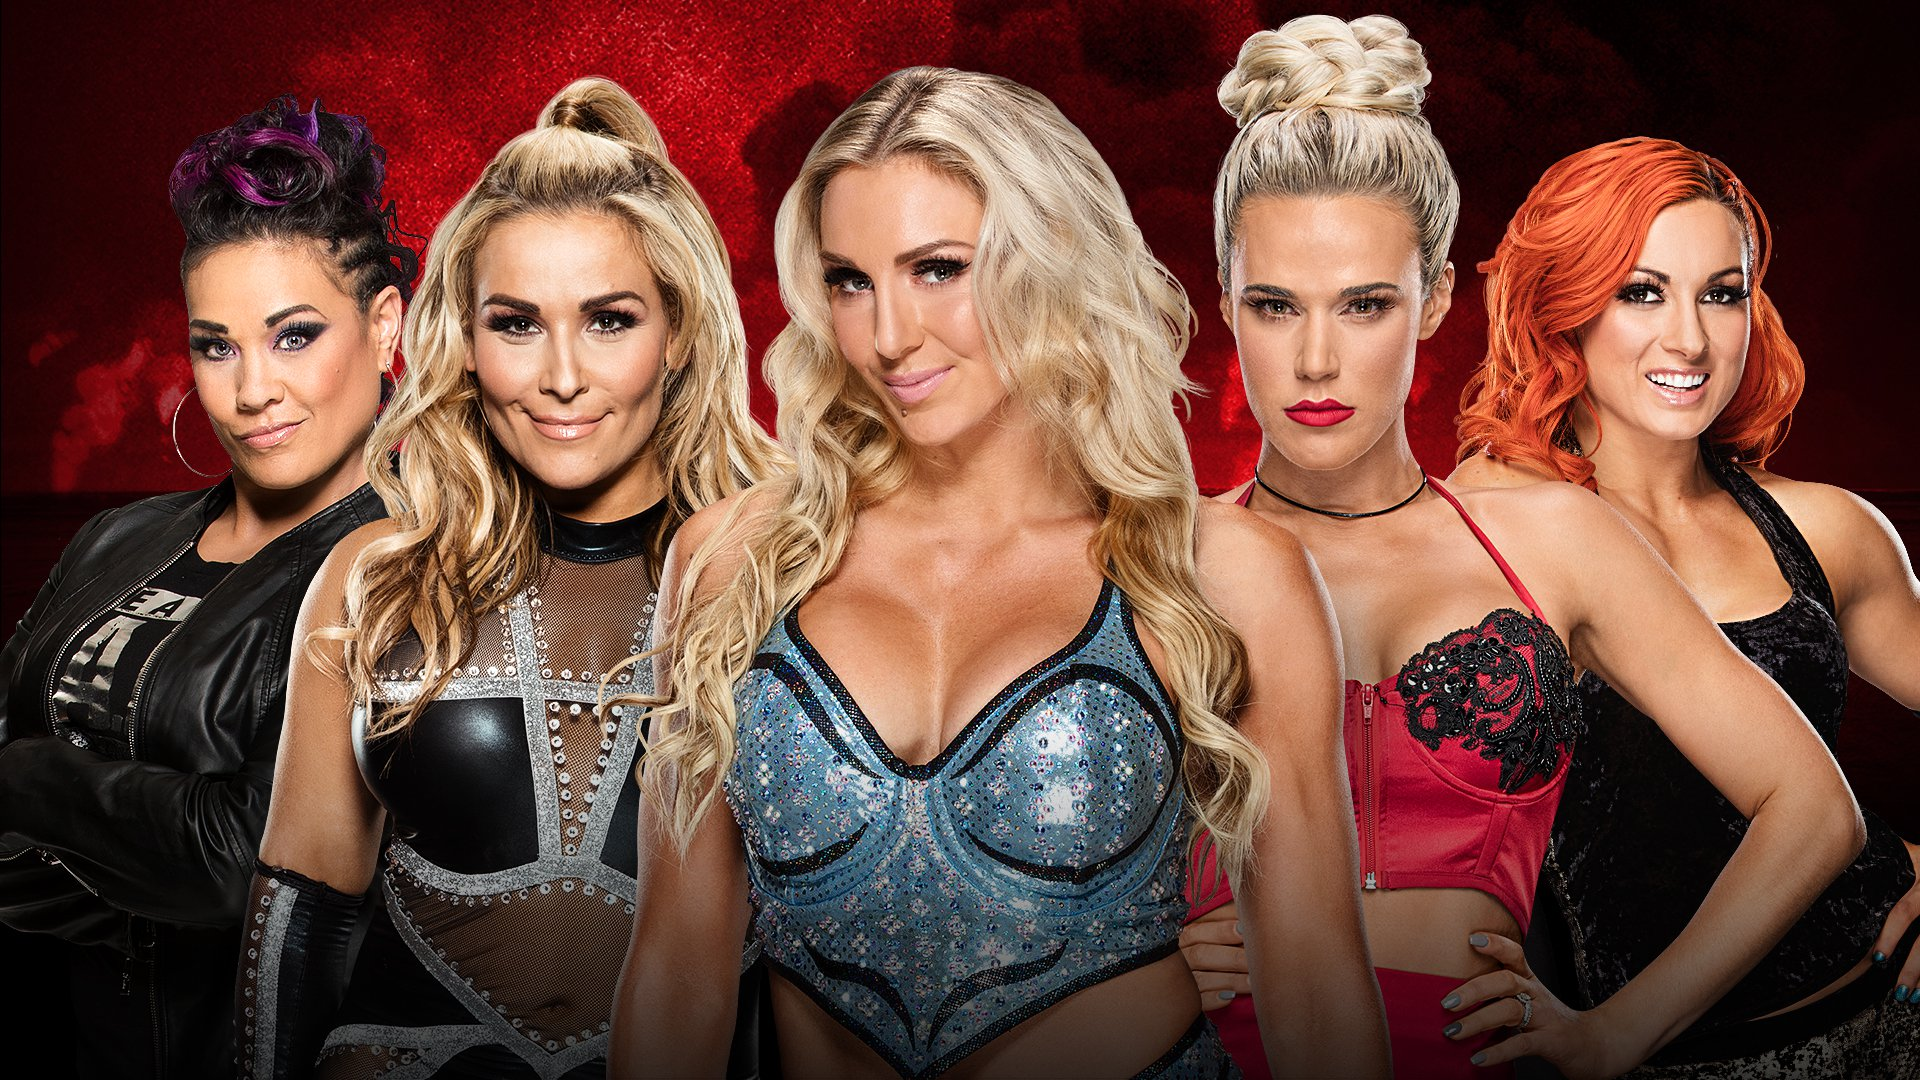 WWE Battleground 2017: Tamina vs. Natalya vs. Charlotte vs. Lana vs. Becky Lynch